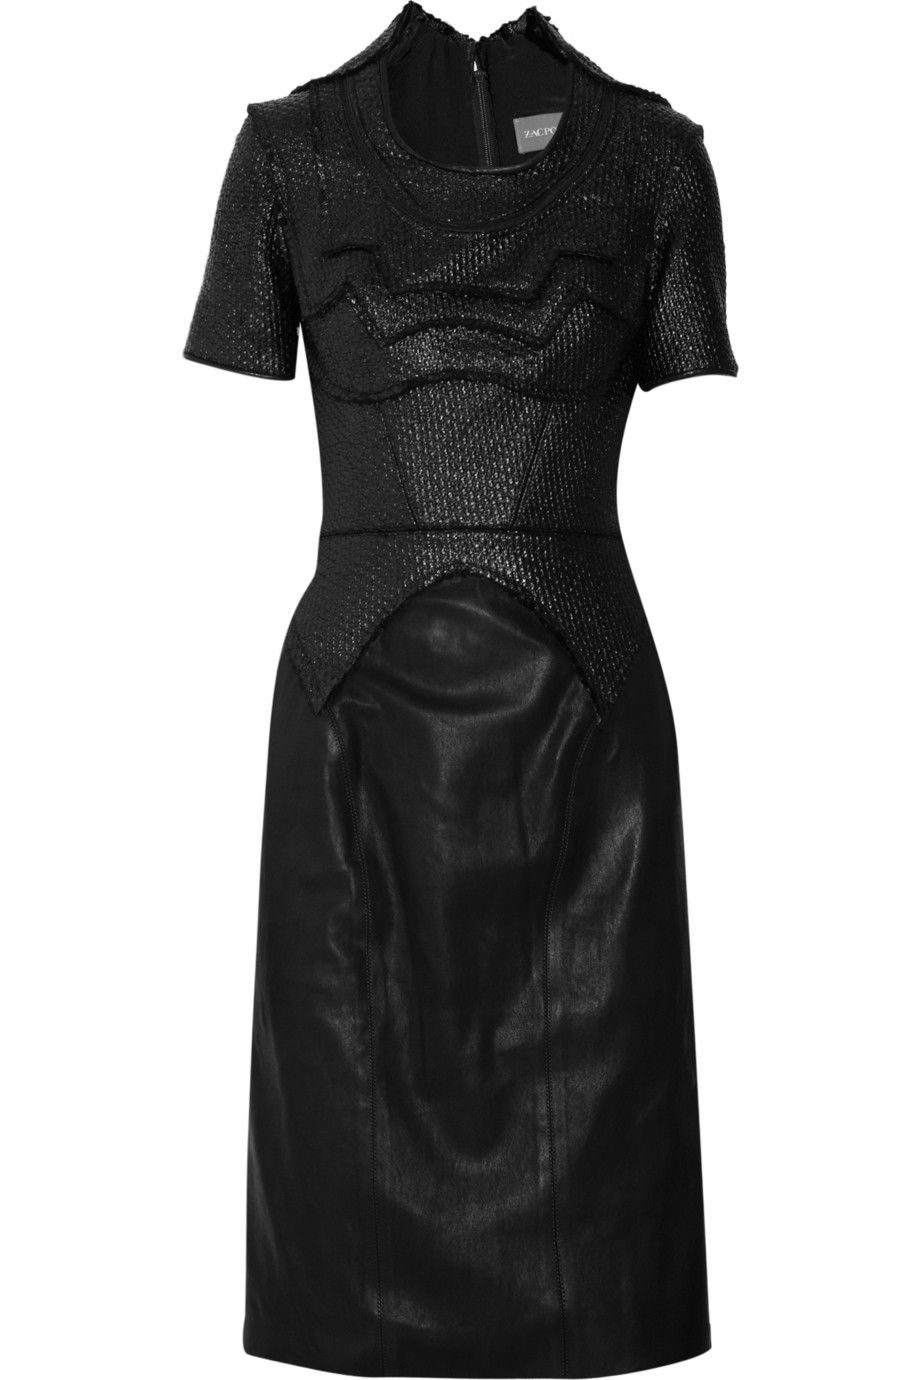 Coated wool-blend and leather dress by Zac Posen